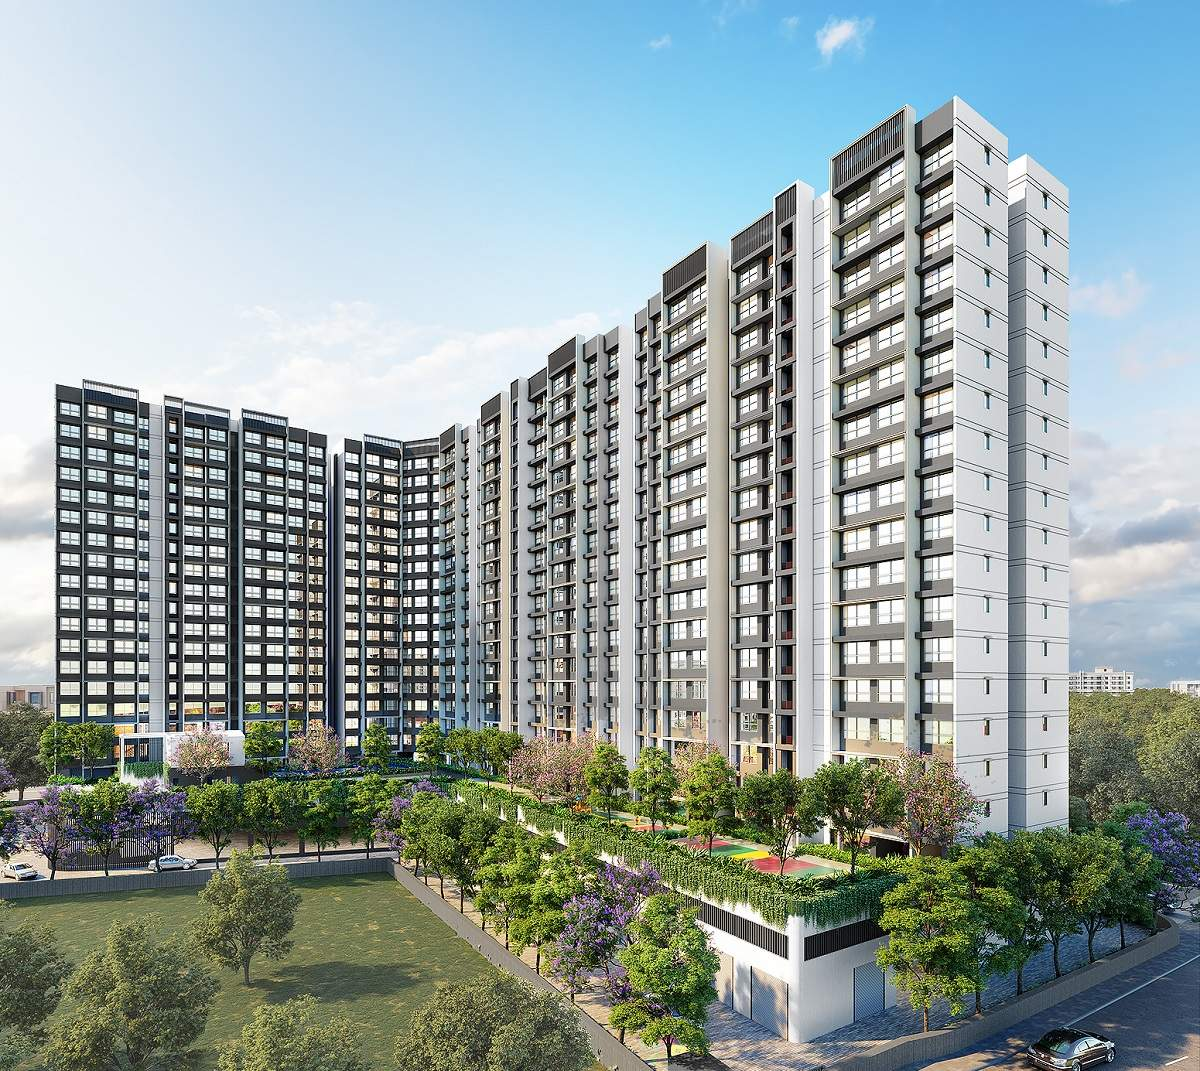 Kalpataru to invest Rs 300 crore to develop residential project in Mumbai – ET RealEstate